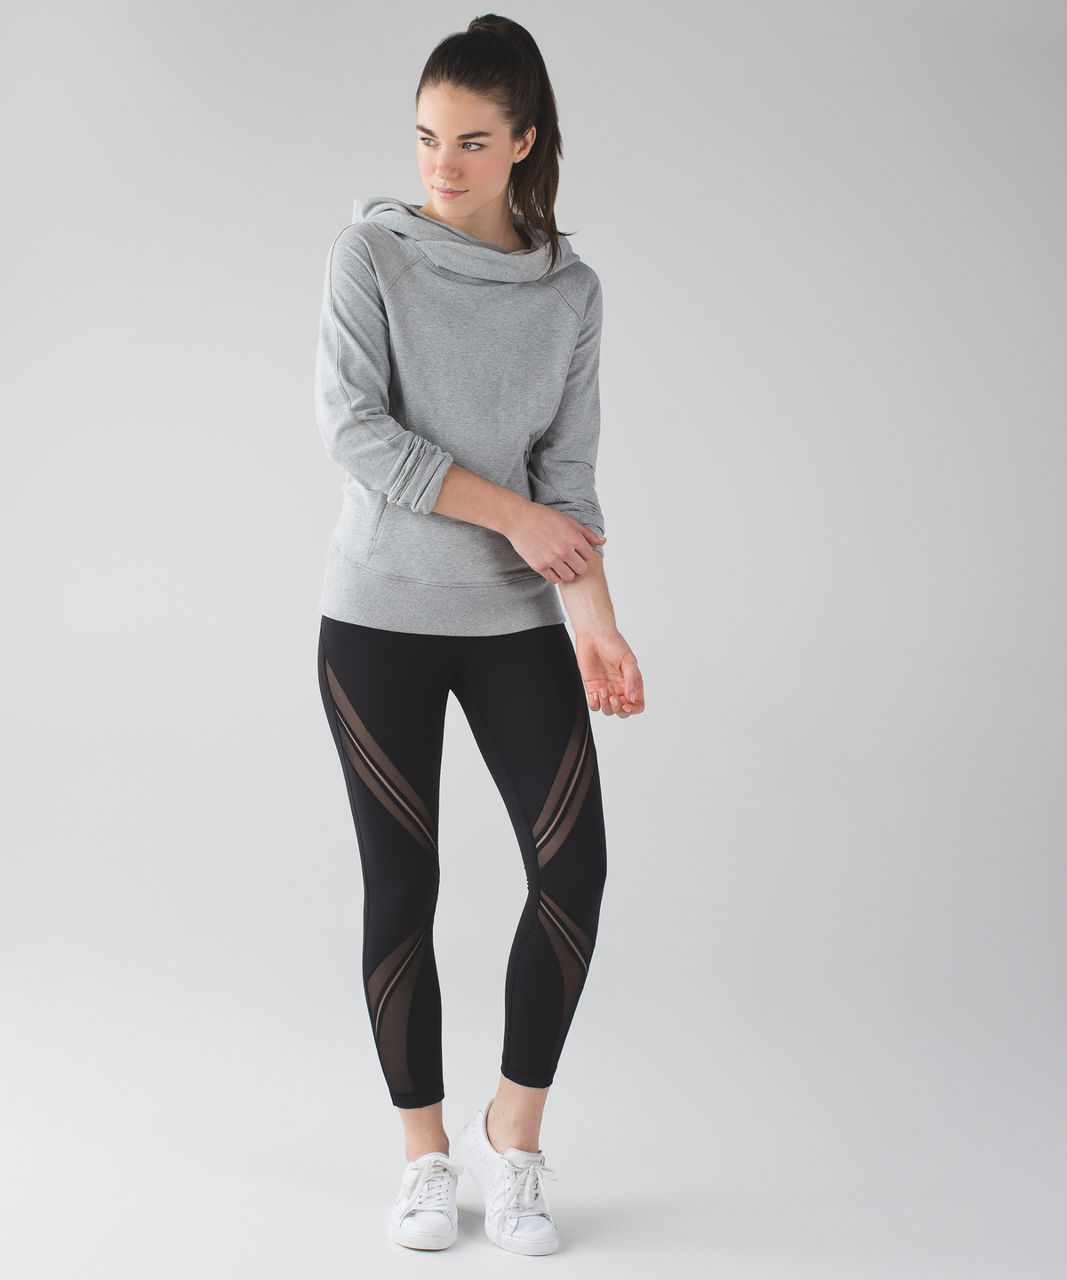 Lululemon High Times Pant (Metta) *Full-On Luxtreme - Black